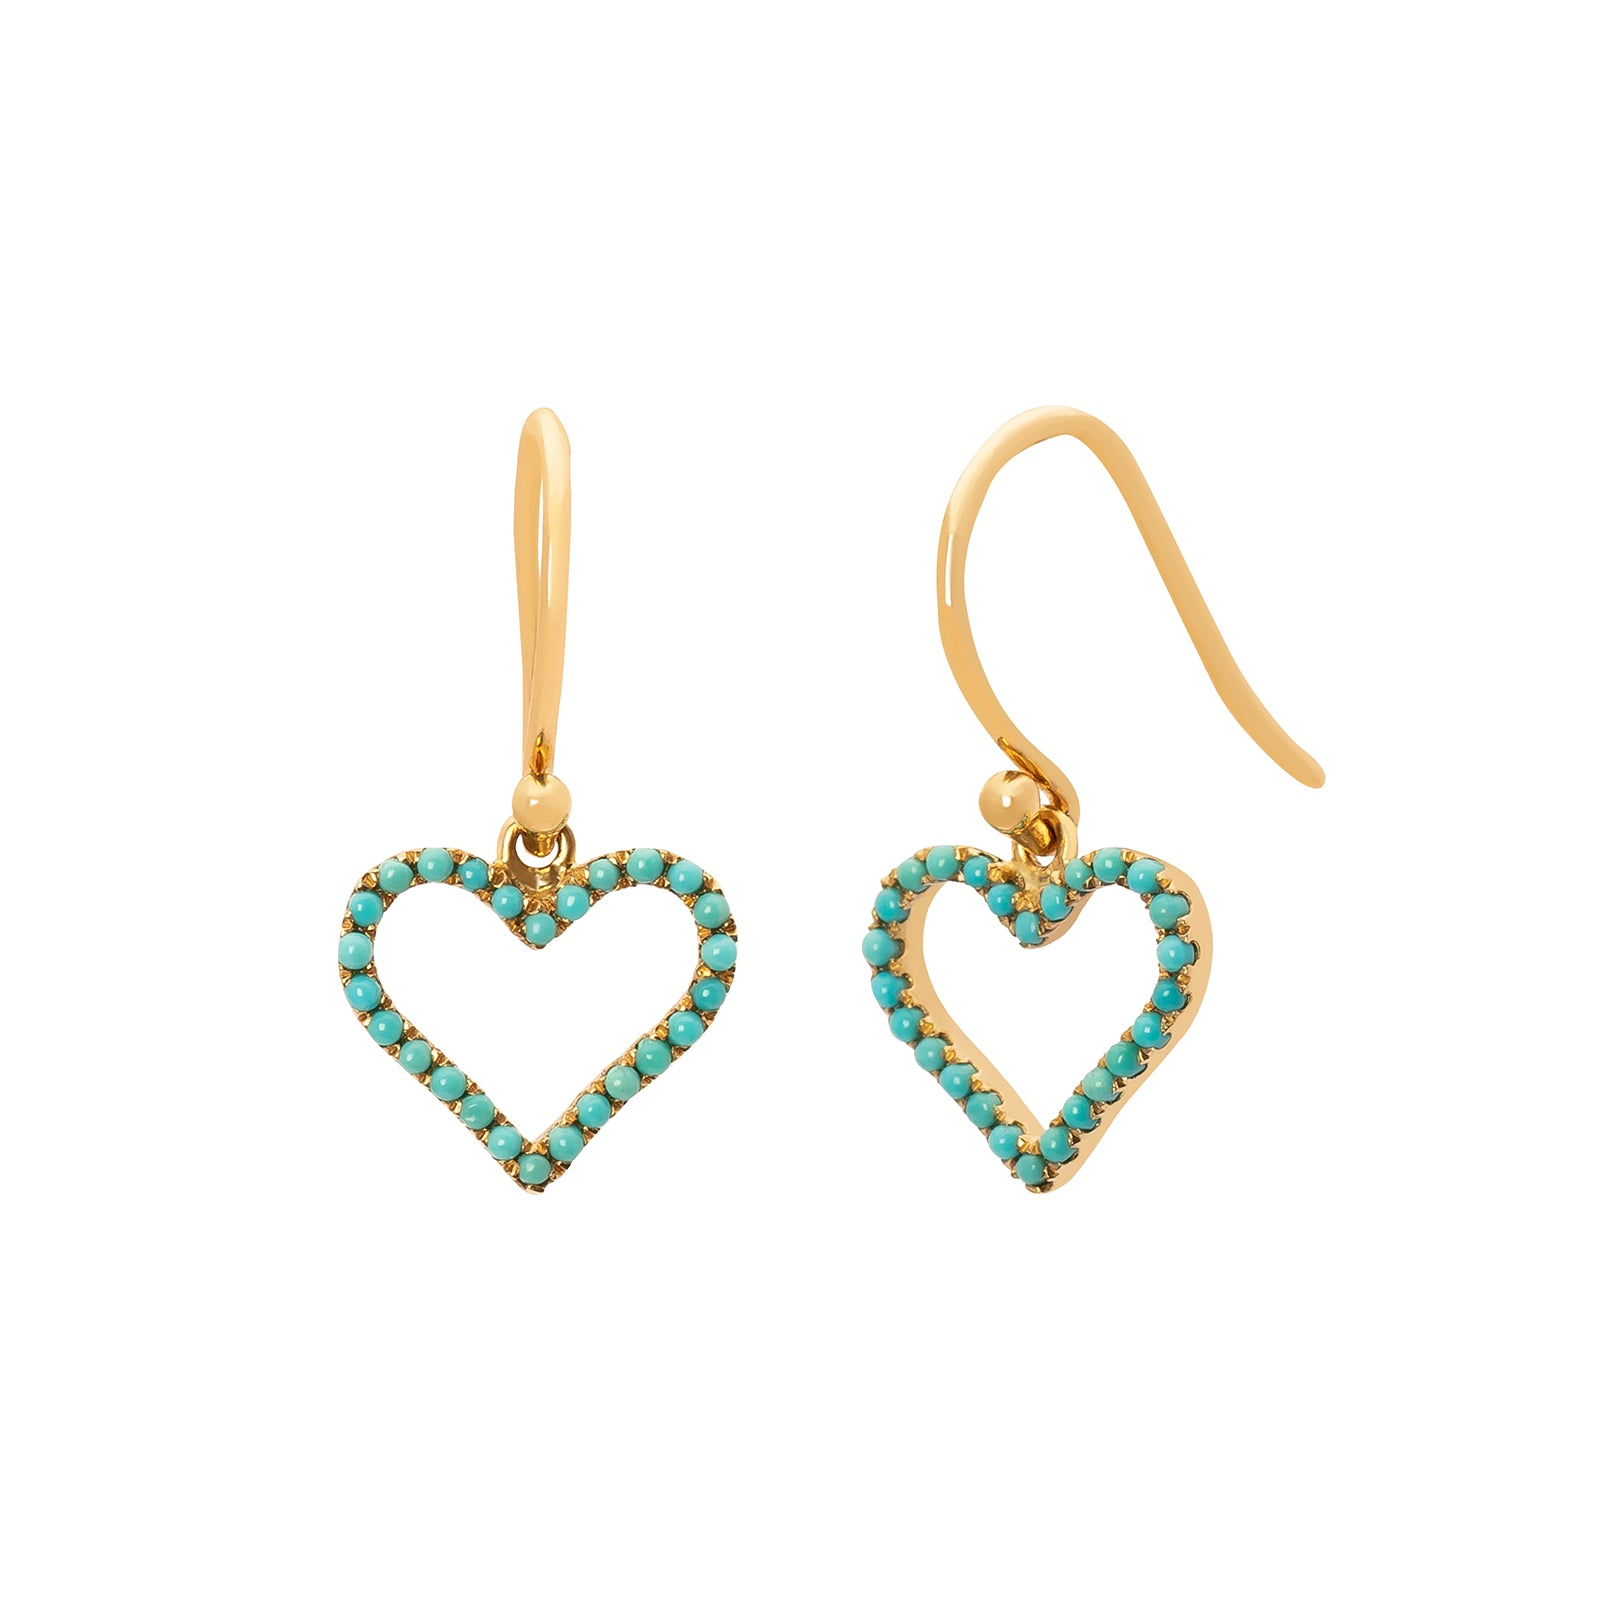 Rosa de la Cruz Heart Hanging Earrings - Turquoise - Earrings - Broken English Jewelry